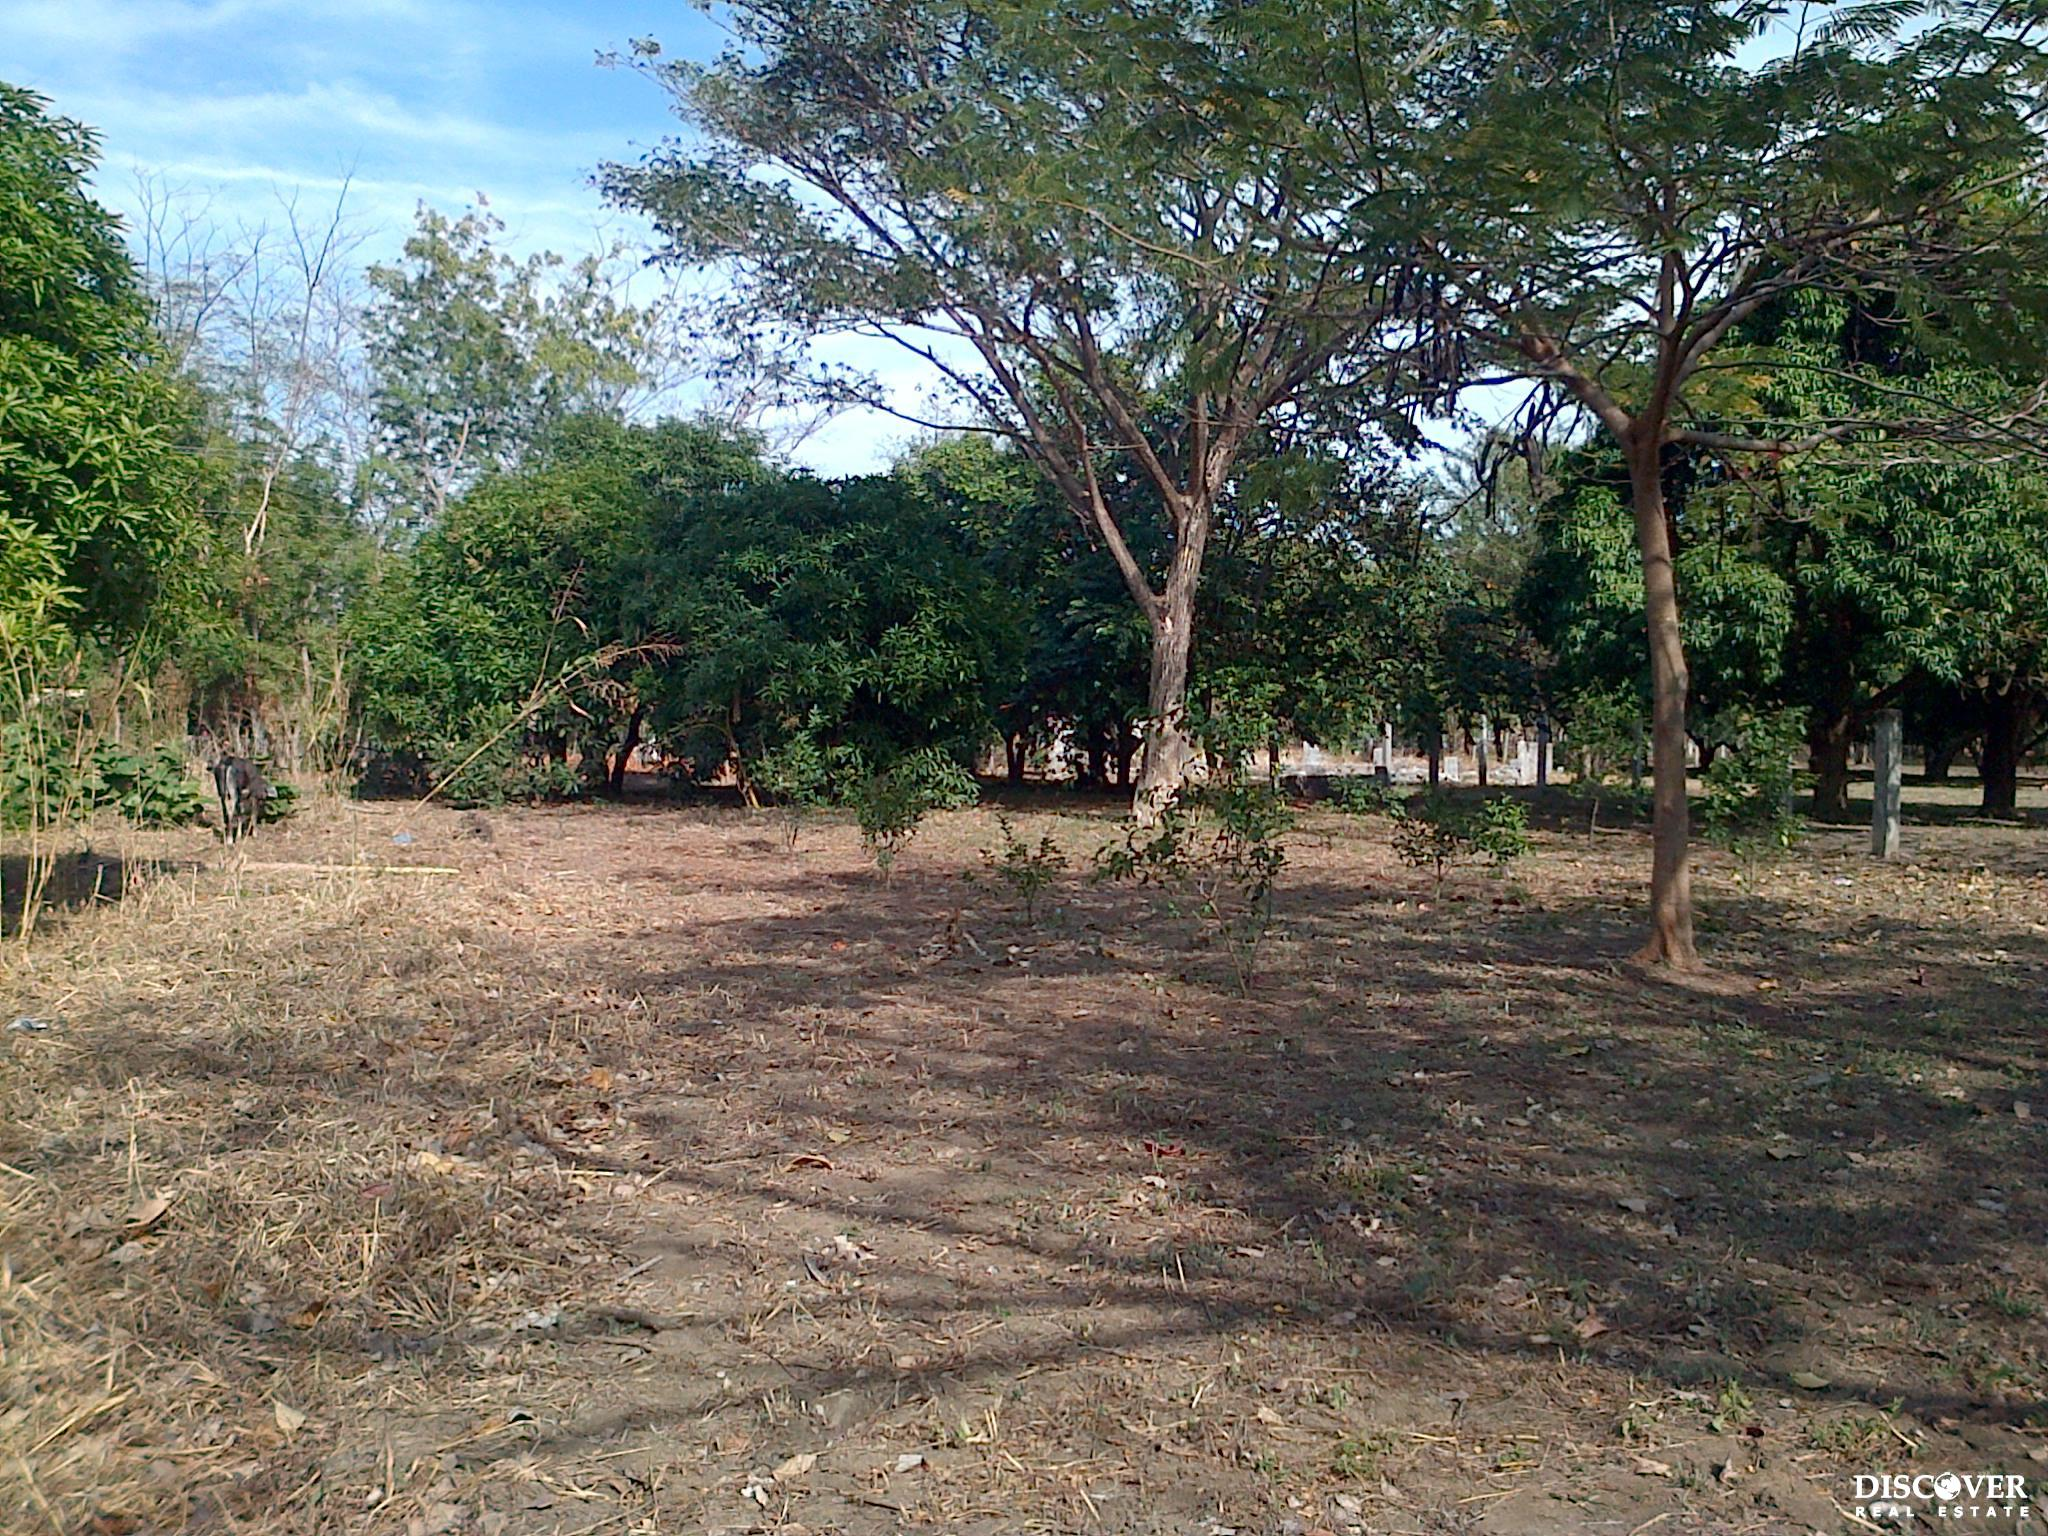 633 Acres of Raw Land Ready for your Dream Development